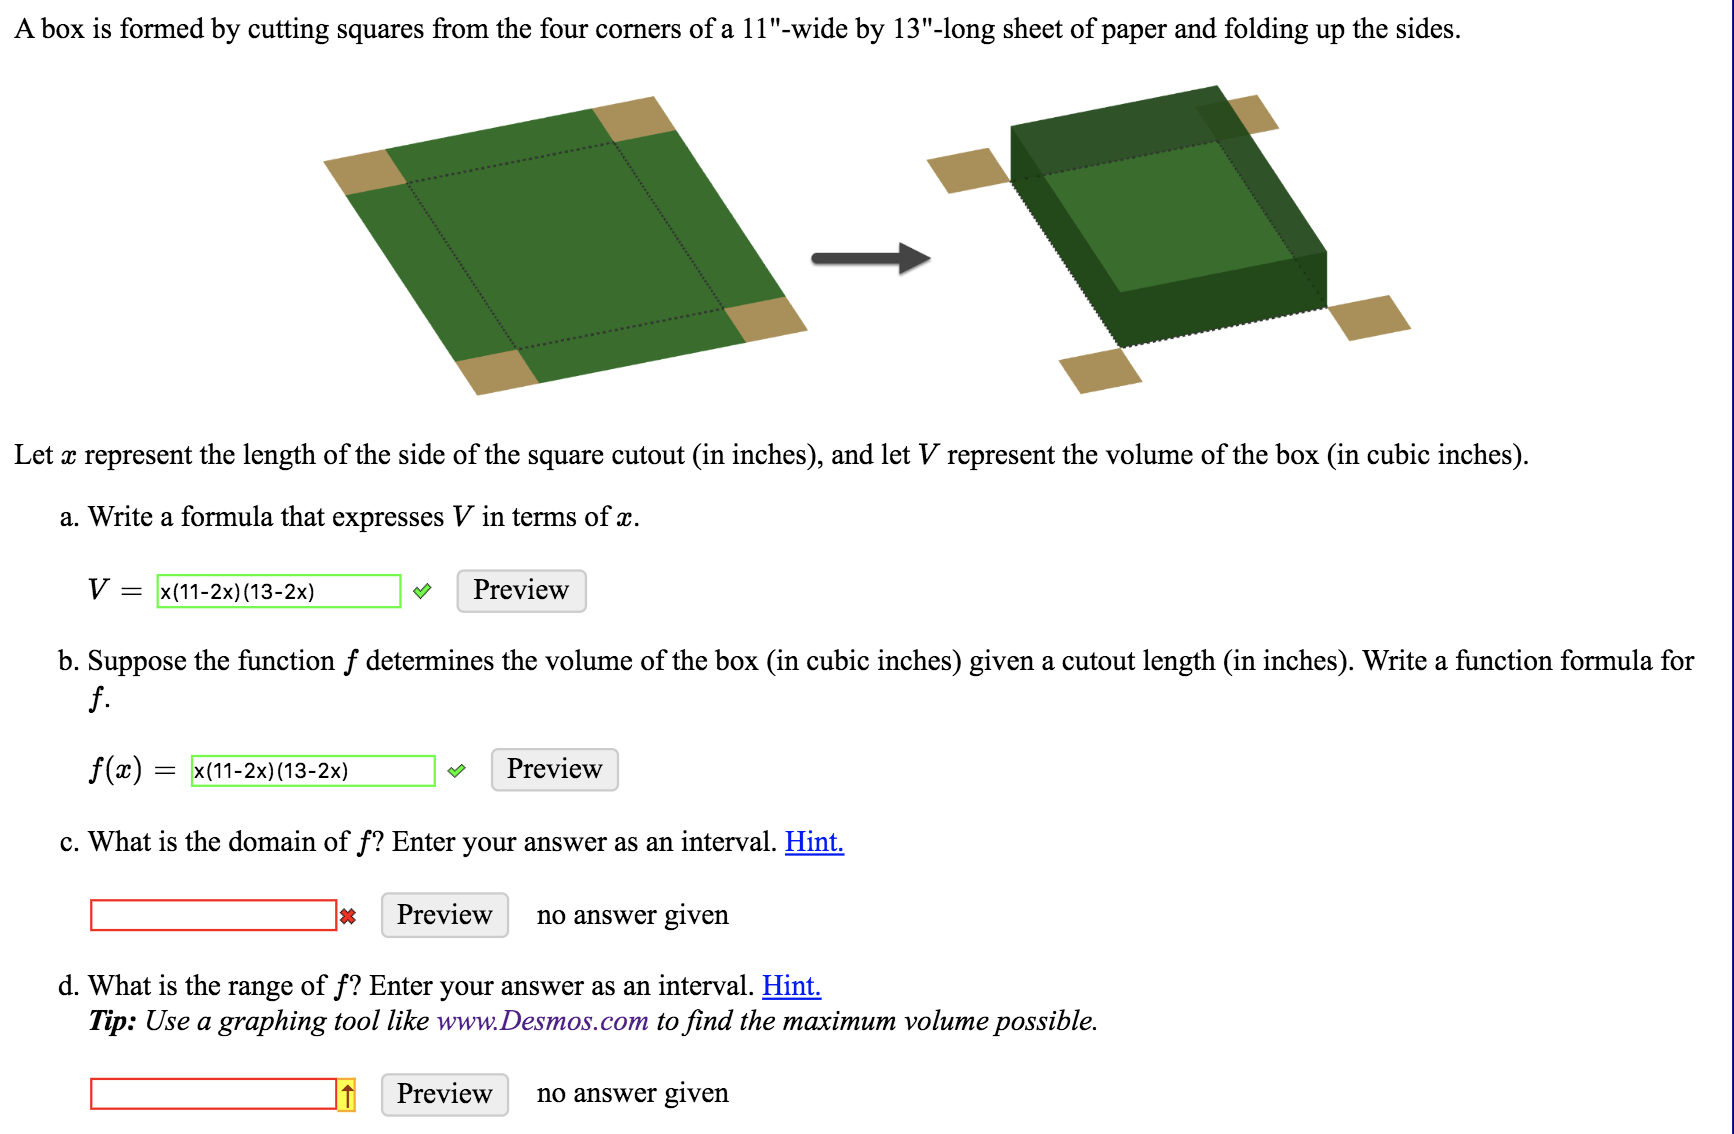 "A box is formed by cutting squares from the four corners of a 11""-wide by 13""-long sheet of paper and folding up the sides. Let x represent the length of the side of the square cutout (in inches), and let V represent the volume of the box (in cubic inches) a. Write a formula that expresses V in terms of x. V Preview x (11-2x) (13-2x) b. Suppose the function f determines the volume of the box (in cubic inches) given a cutout length (in inches). Write a function formula for f. f(x) = x(11-2x) (13-2x) Preview c. What is the domain of f? Enter your answer as an interval. Hint. Preview no answer given d. What is the range of f? Enter your answer as an interval. Hint. Tip: Use a graphing tool like www.Desmos.com to find the maximum volume possible. Preview no answer given"